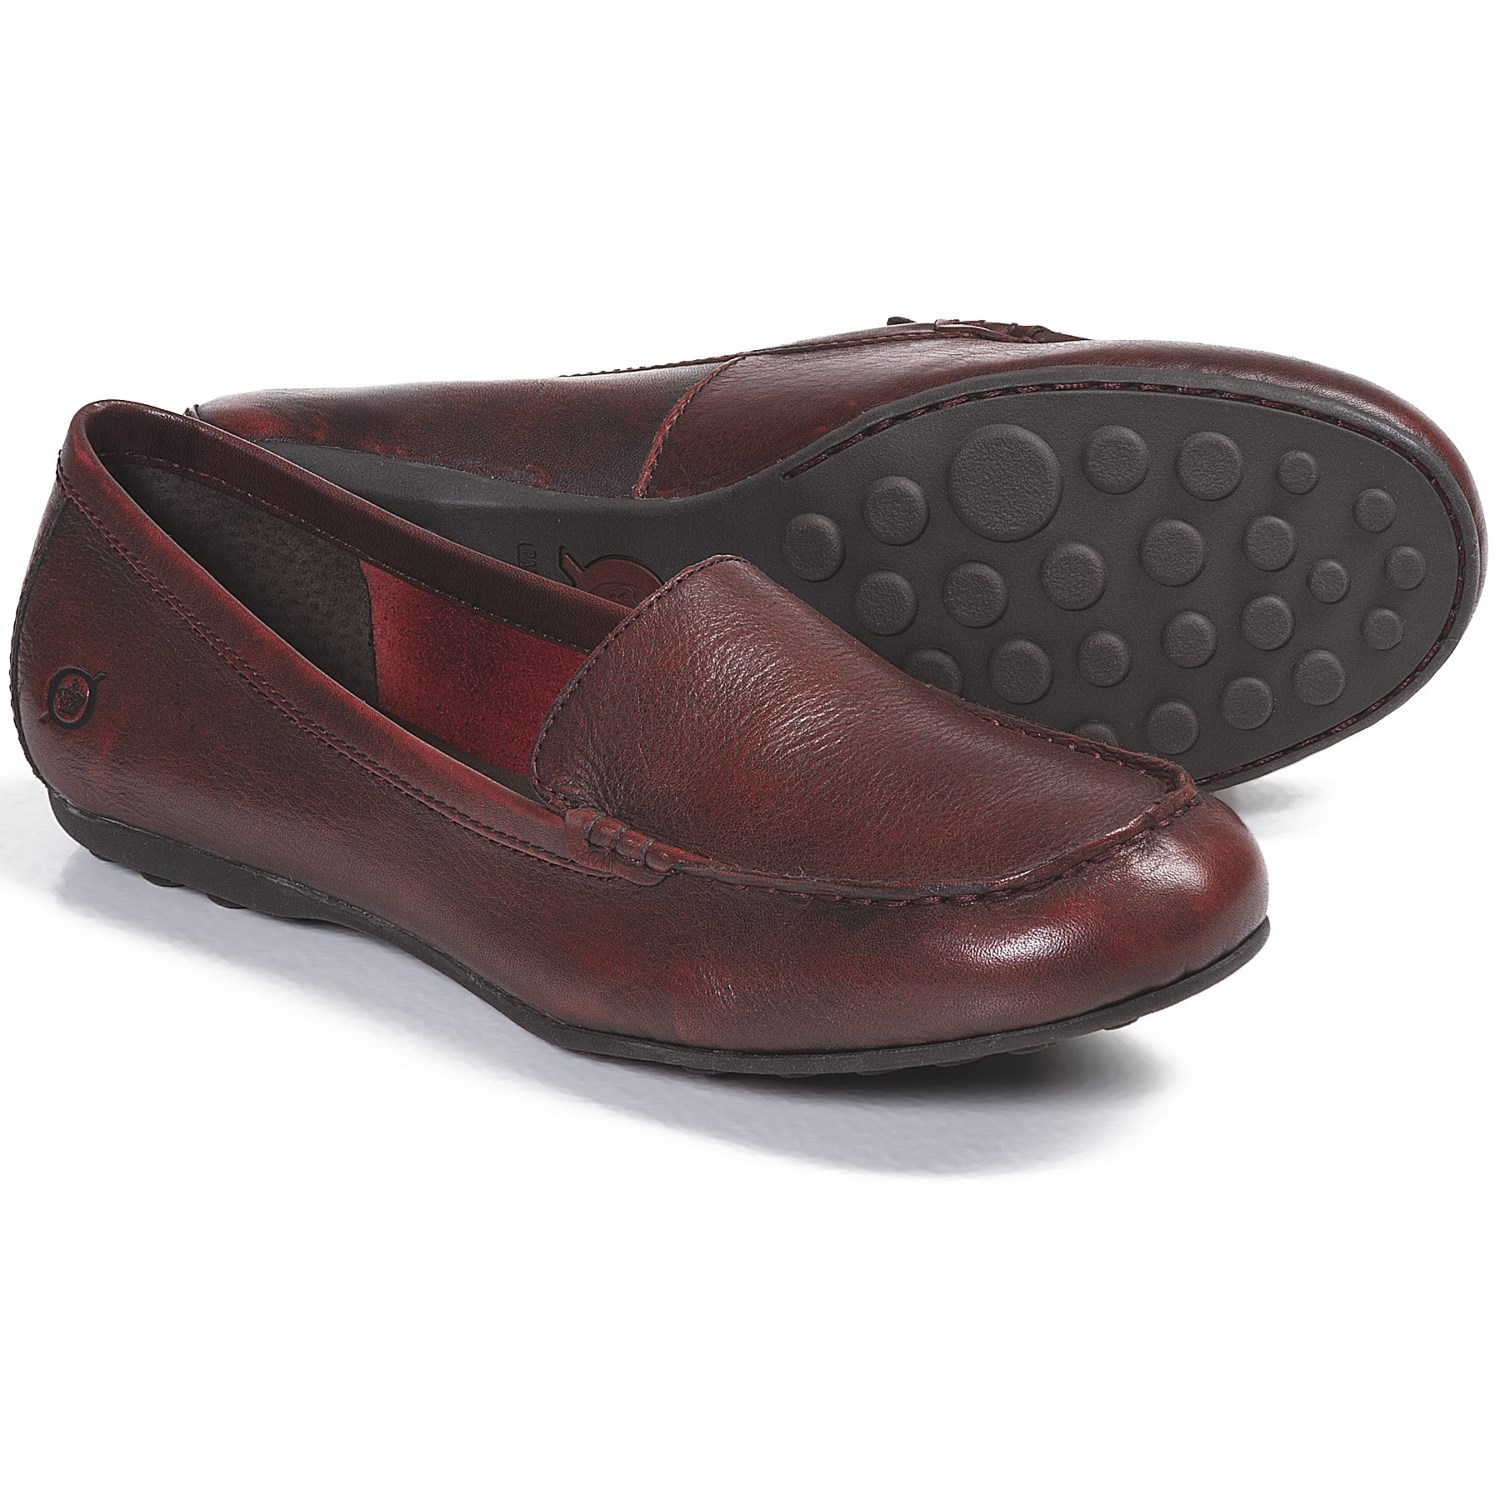 born joanie shoes leather slip ons for save 36